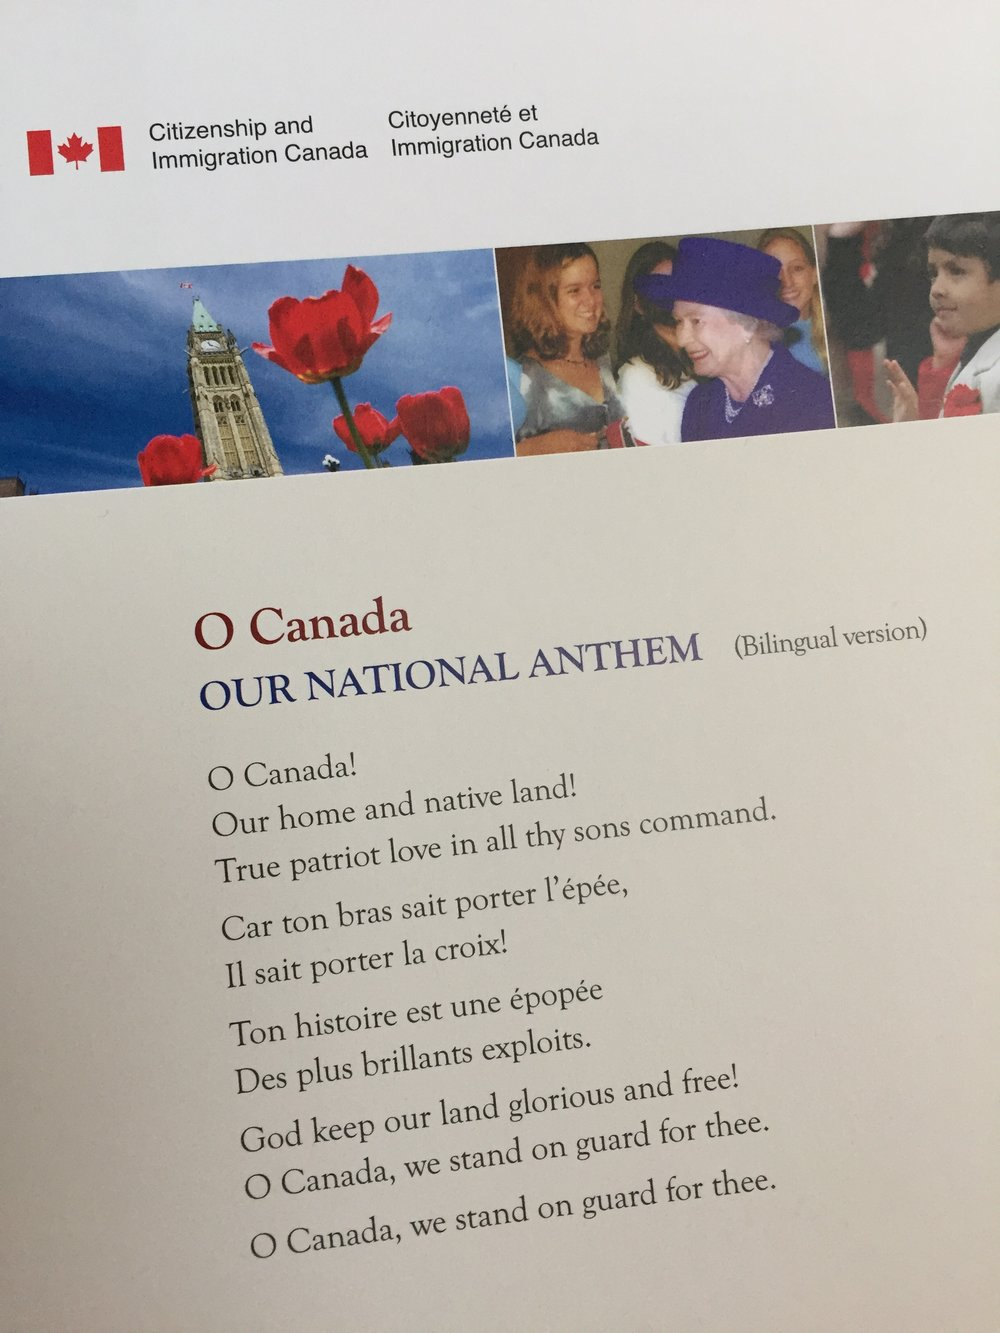 Canada's national anthem